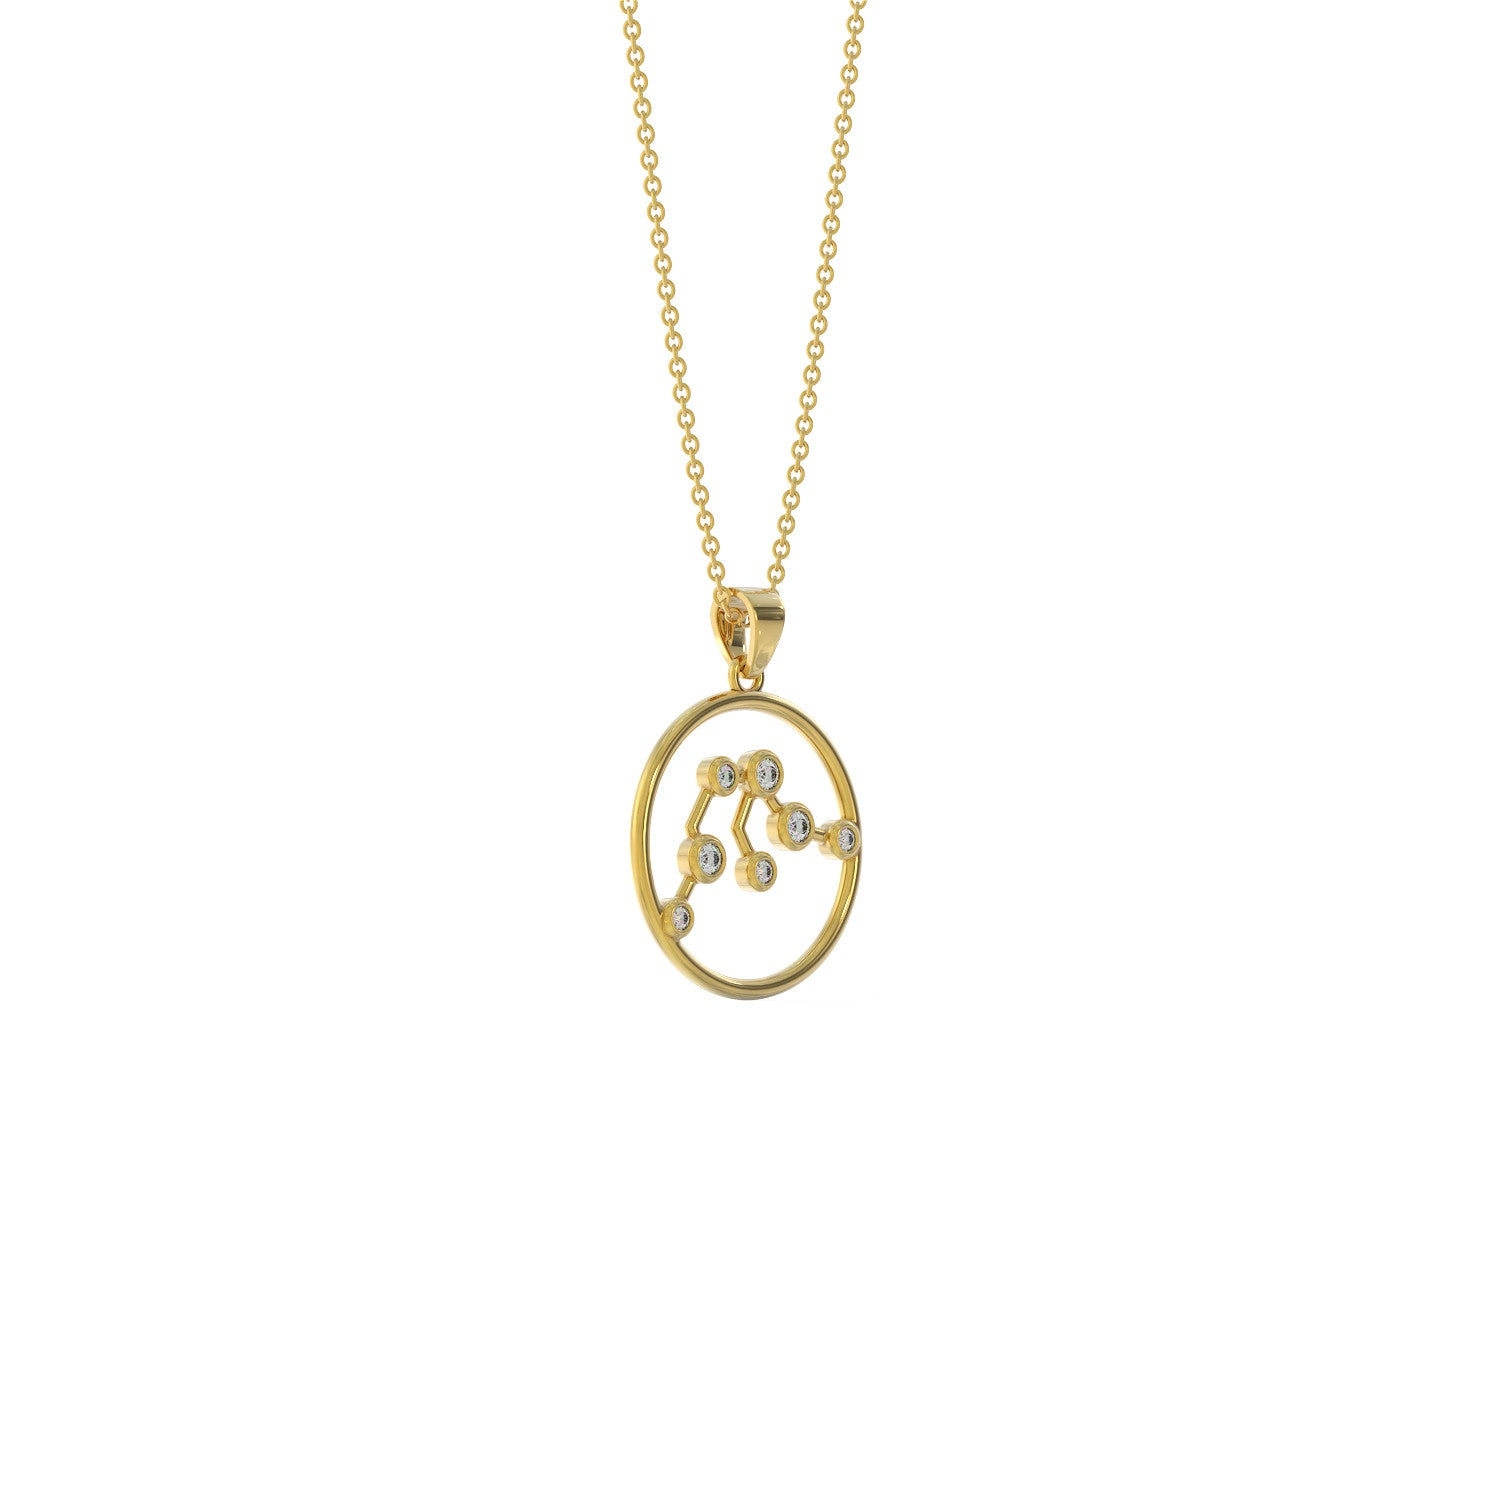 Aquarius Birthstone Pendant Necklace